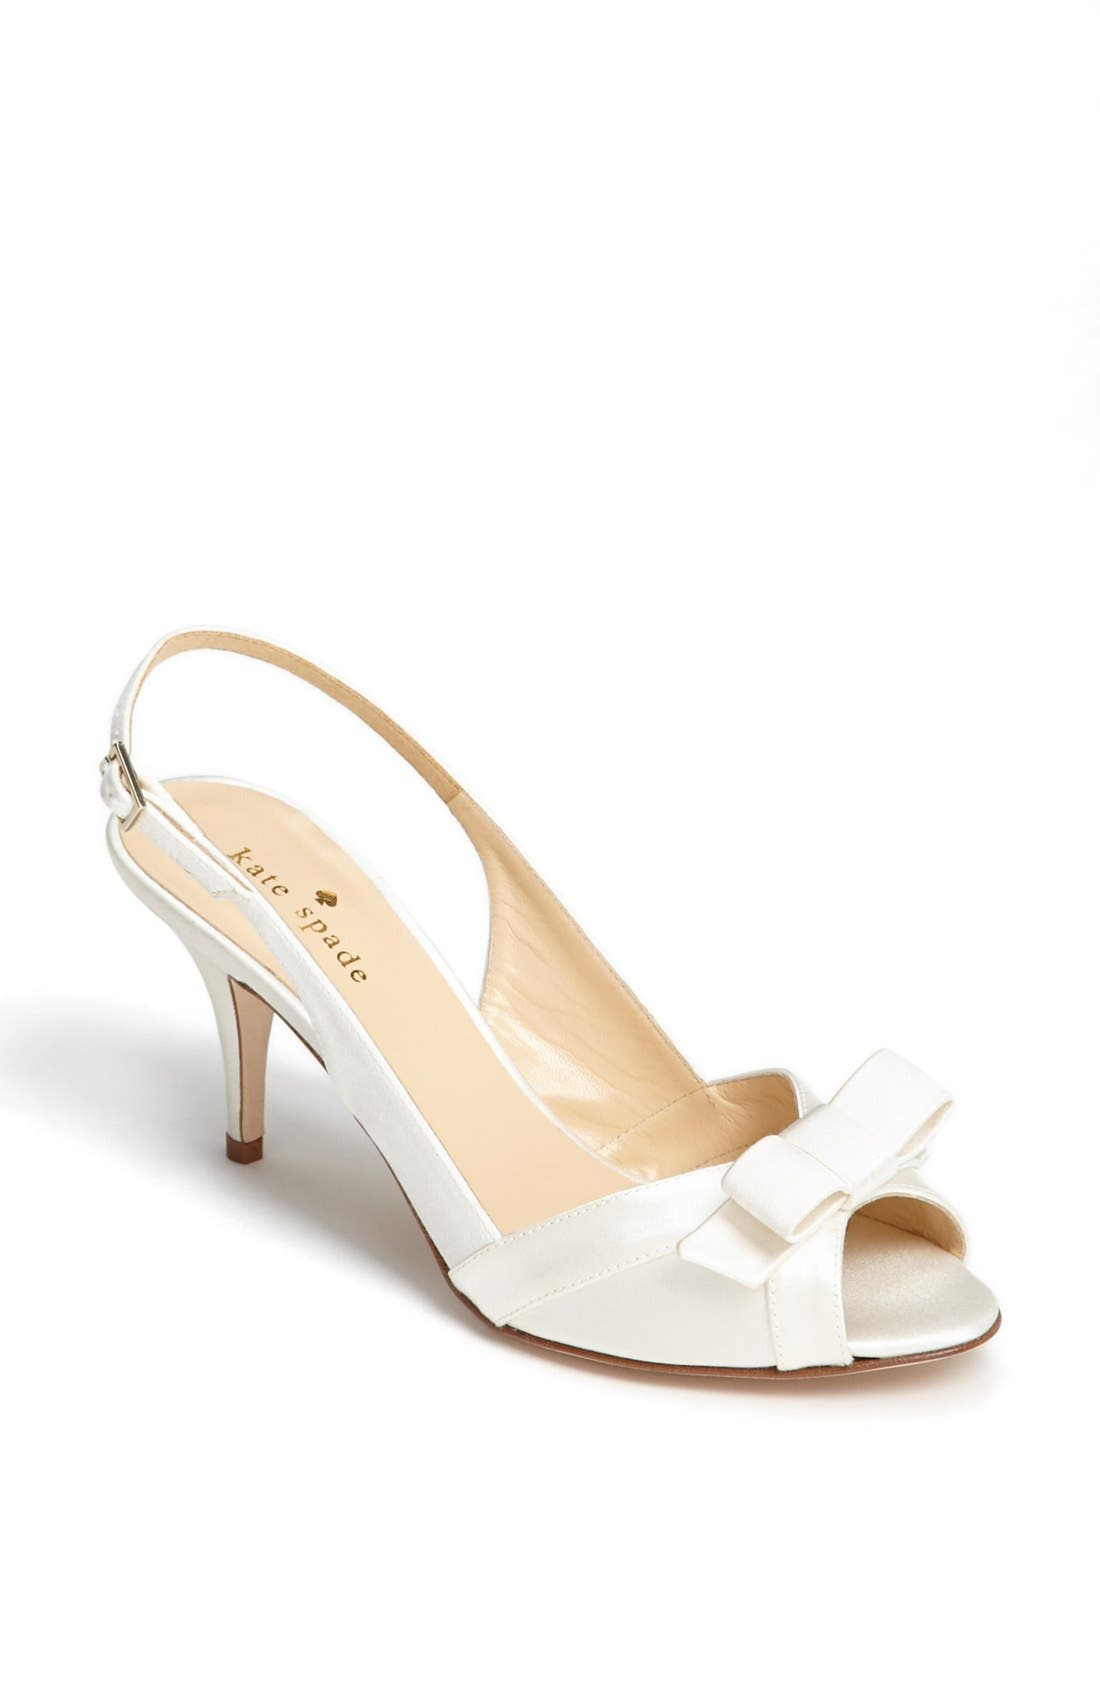 Alternate Image 1 Selected - kate spade new york 'silver' slingback sandal